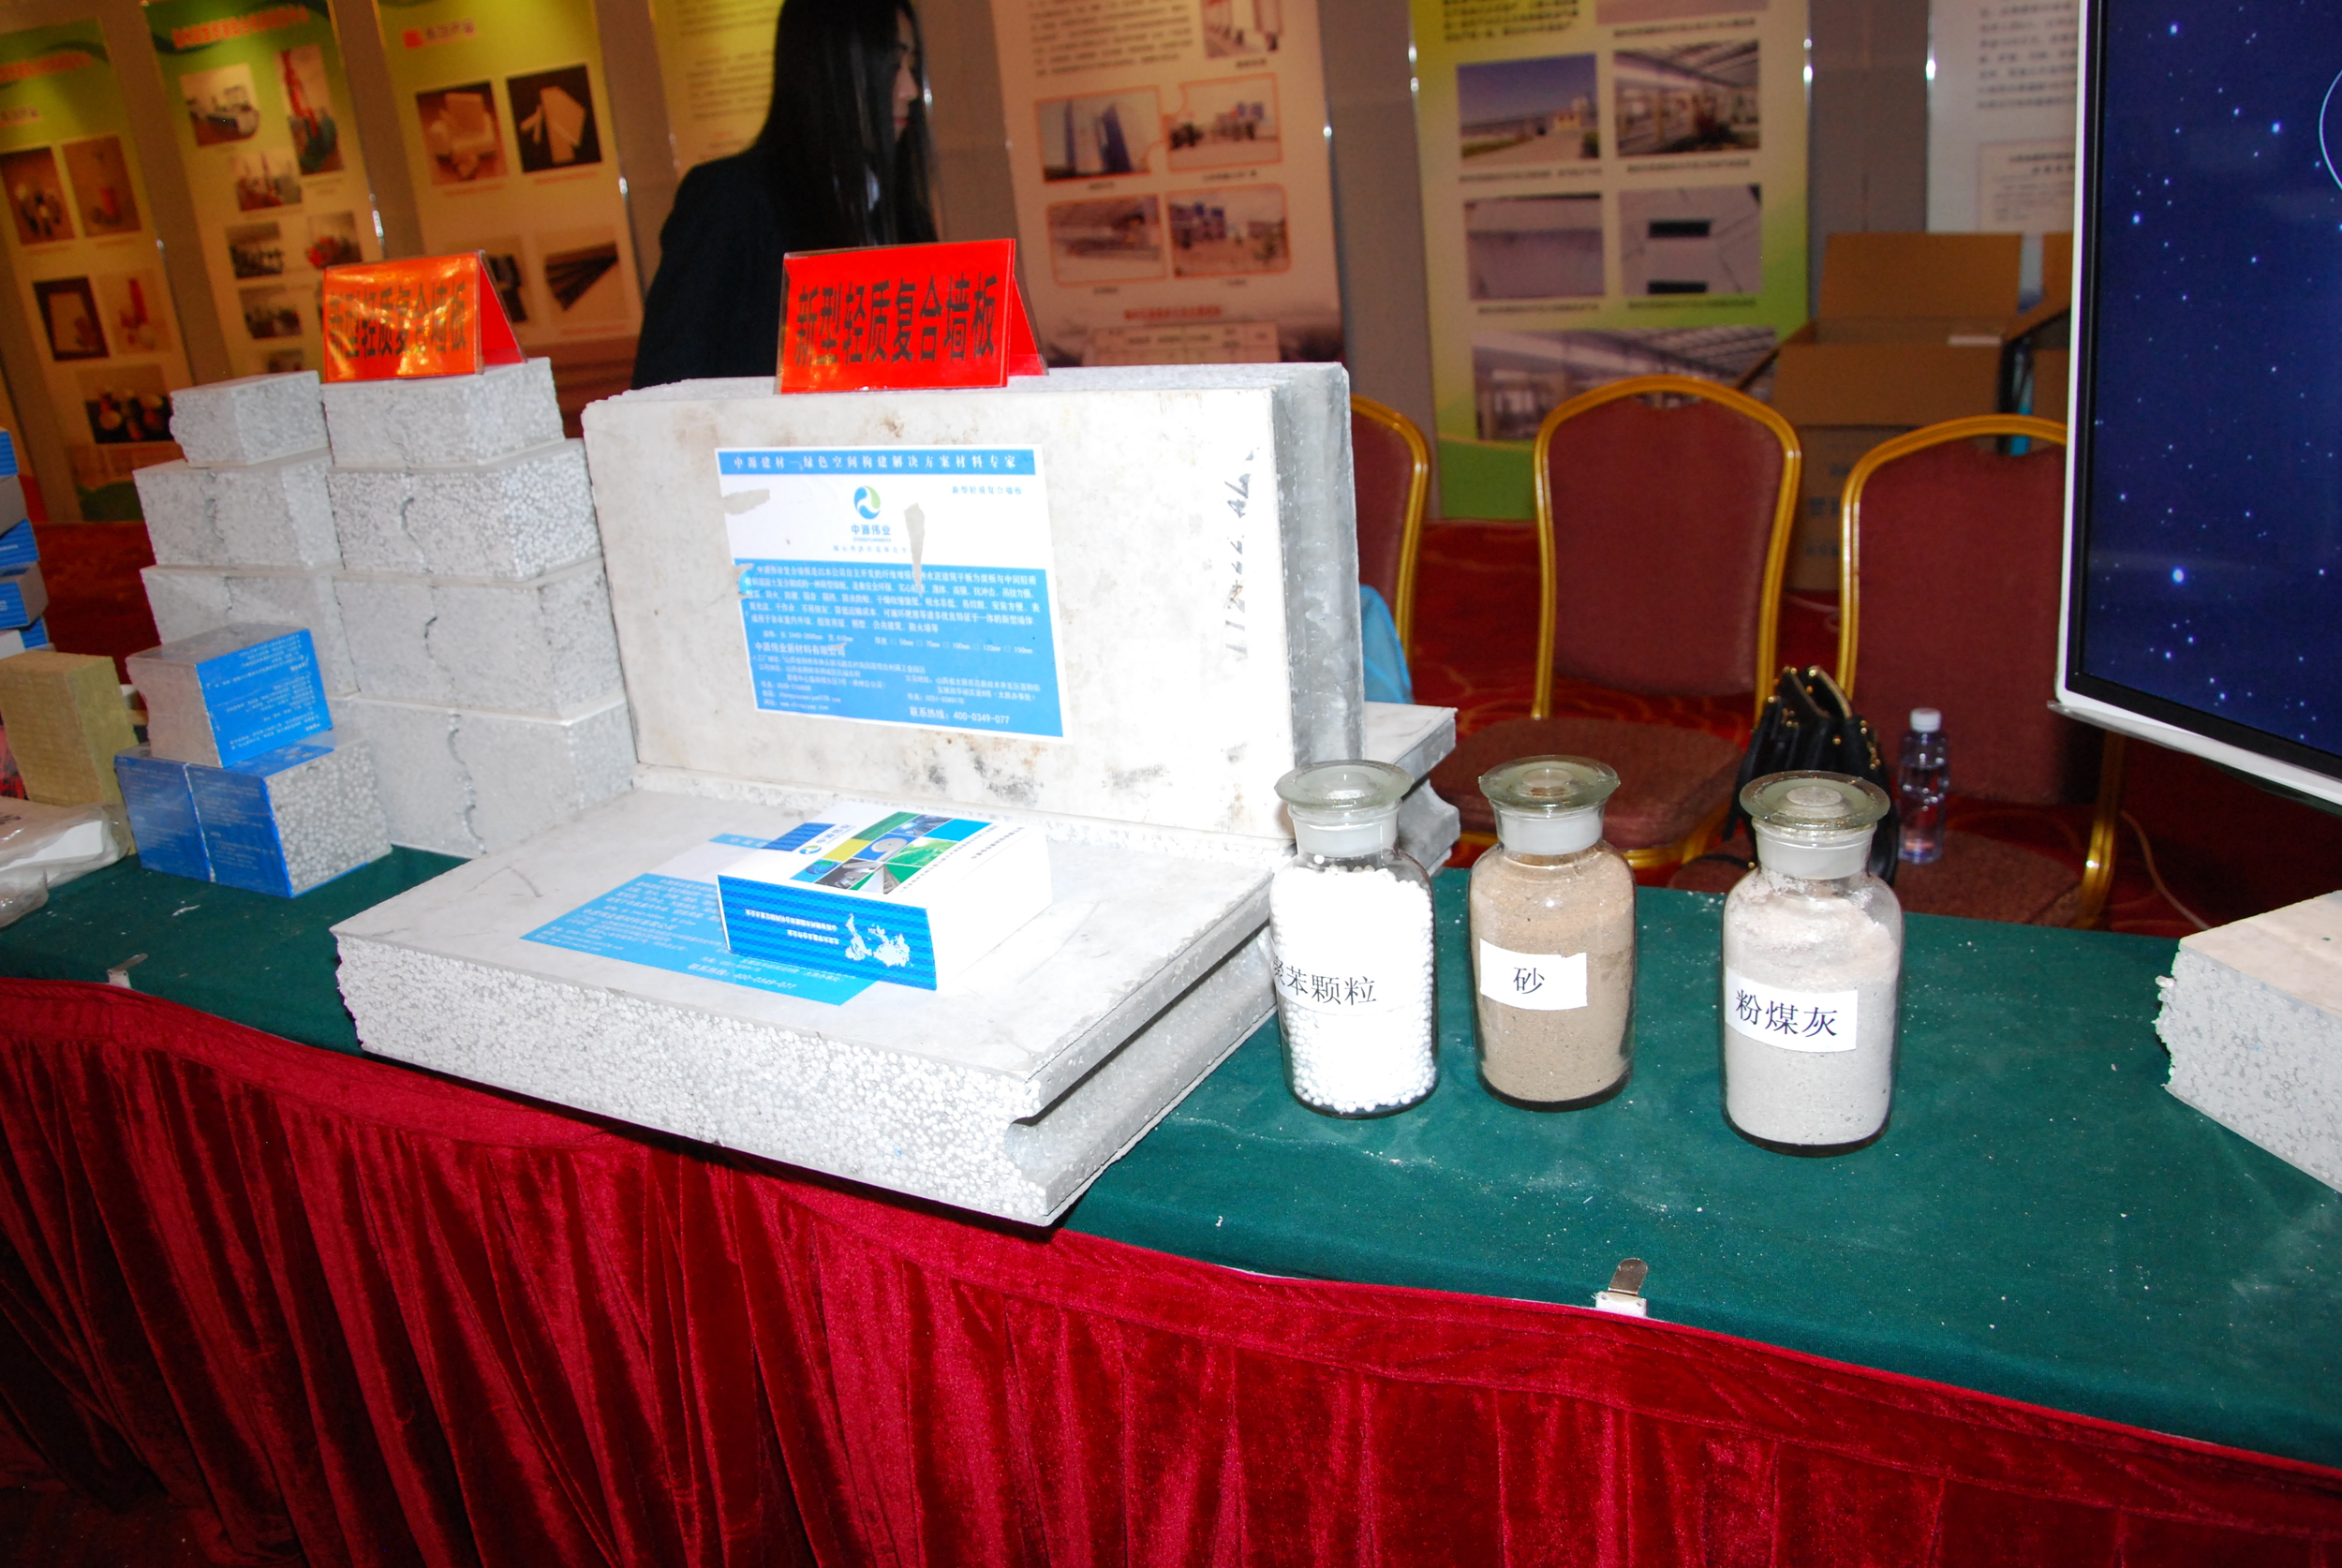 Lightweight aggregates, mineral fillers and construction material samples and information on display in the Coal Ash Asia 2014 Exhibition Hall.